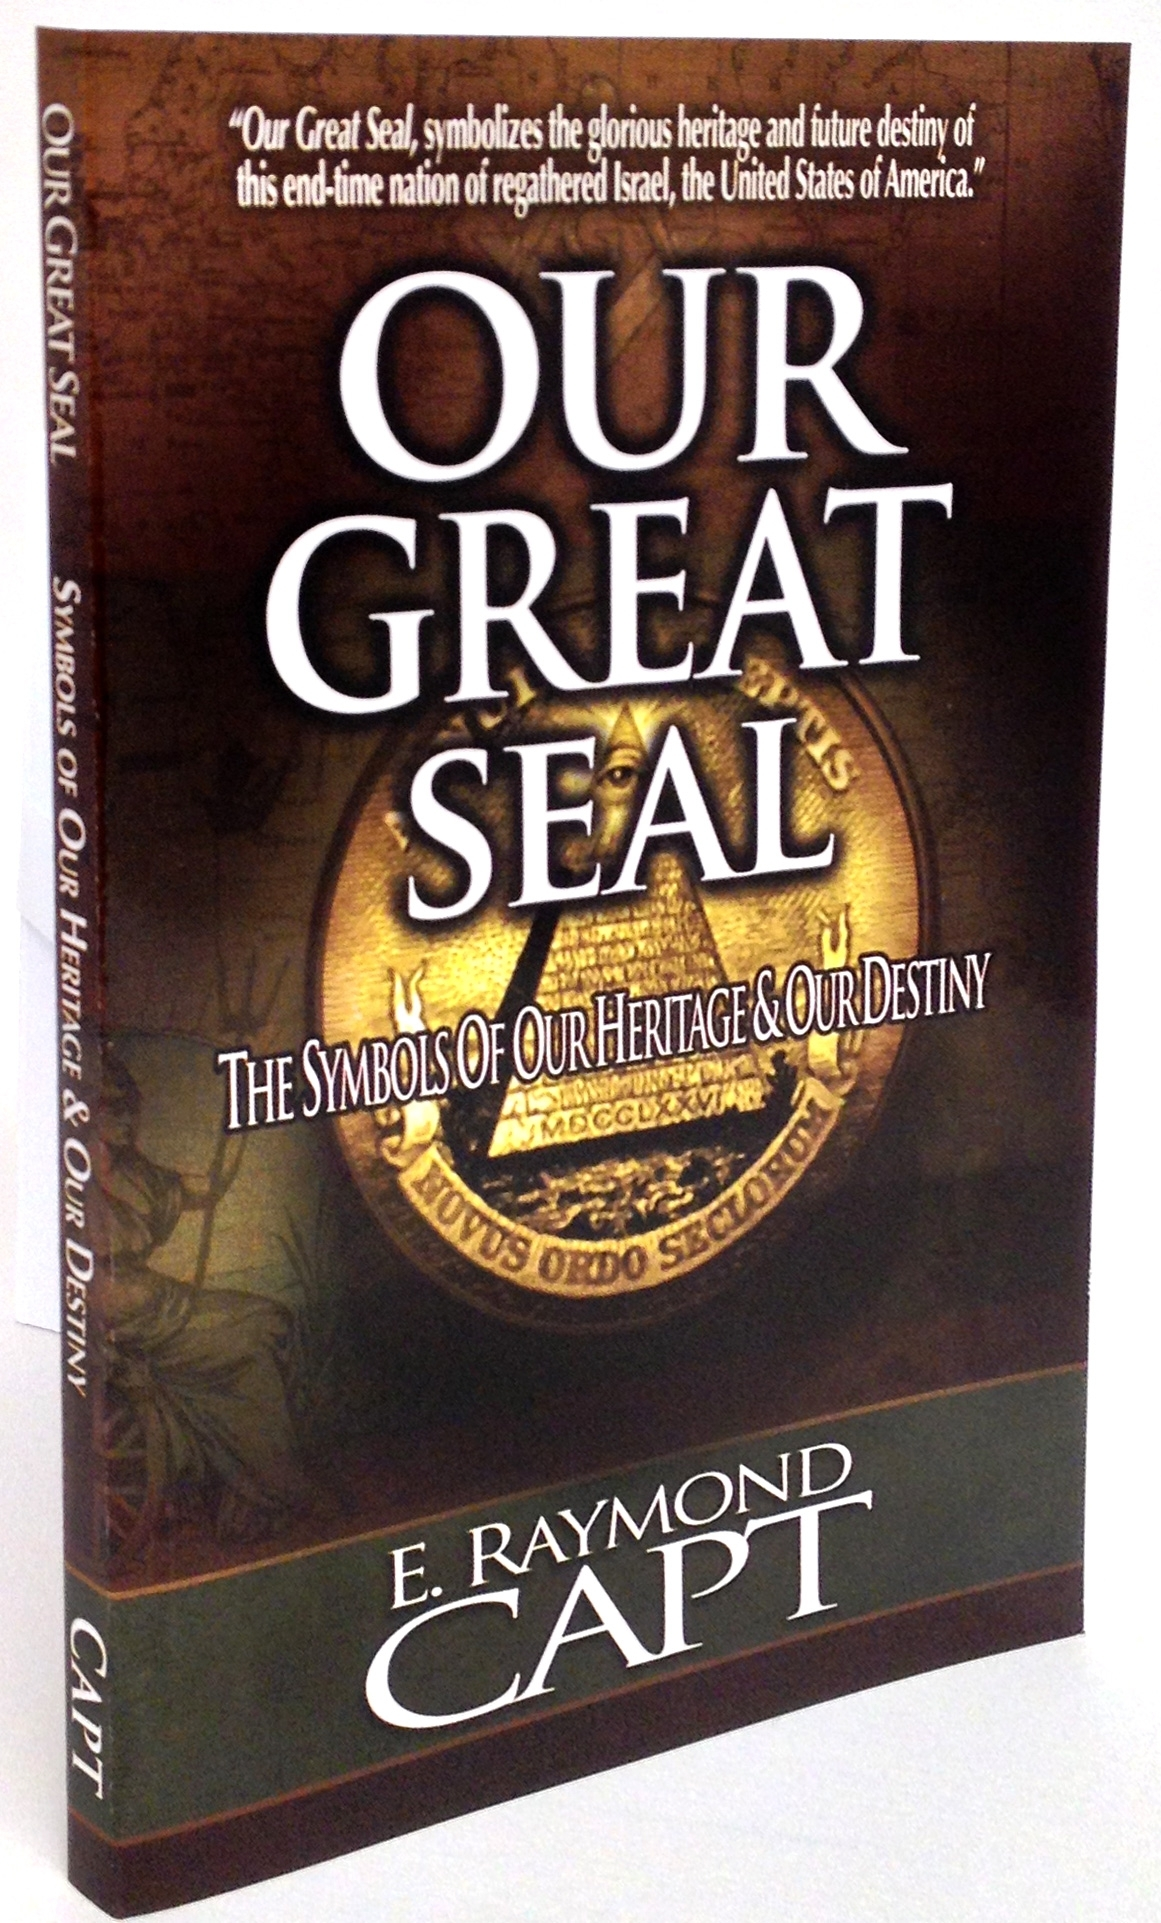 Our Great Seal  [Revised & Expanded]...[Capt] Many believe its creation was directed by an unseen hand. [Kindle Available]